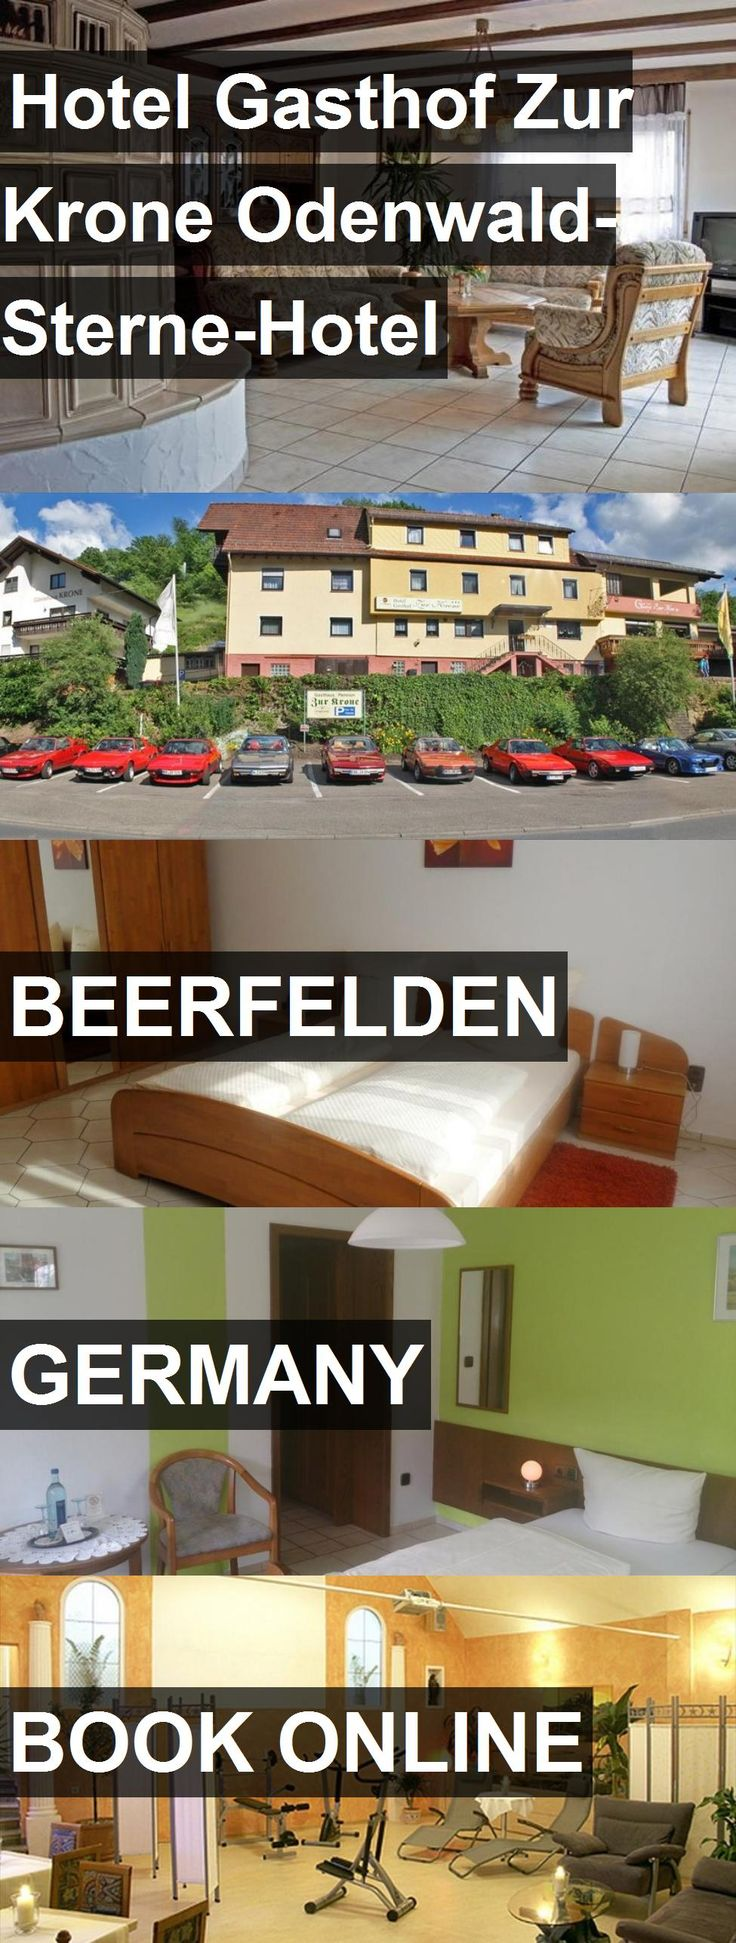 Hotel Hotel Gasthof Zur Krone Odenwald-Sterne-Hotel in Beerfelden, Germany. For more information, photos, reviews and best prices please follow the link. #Germany #Beerfelden #HotelGasthofZurKroneOdenwald-Sterne-Hotel #hotel #travel #vacation